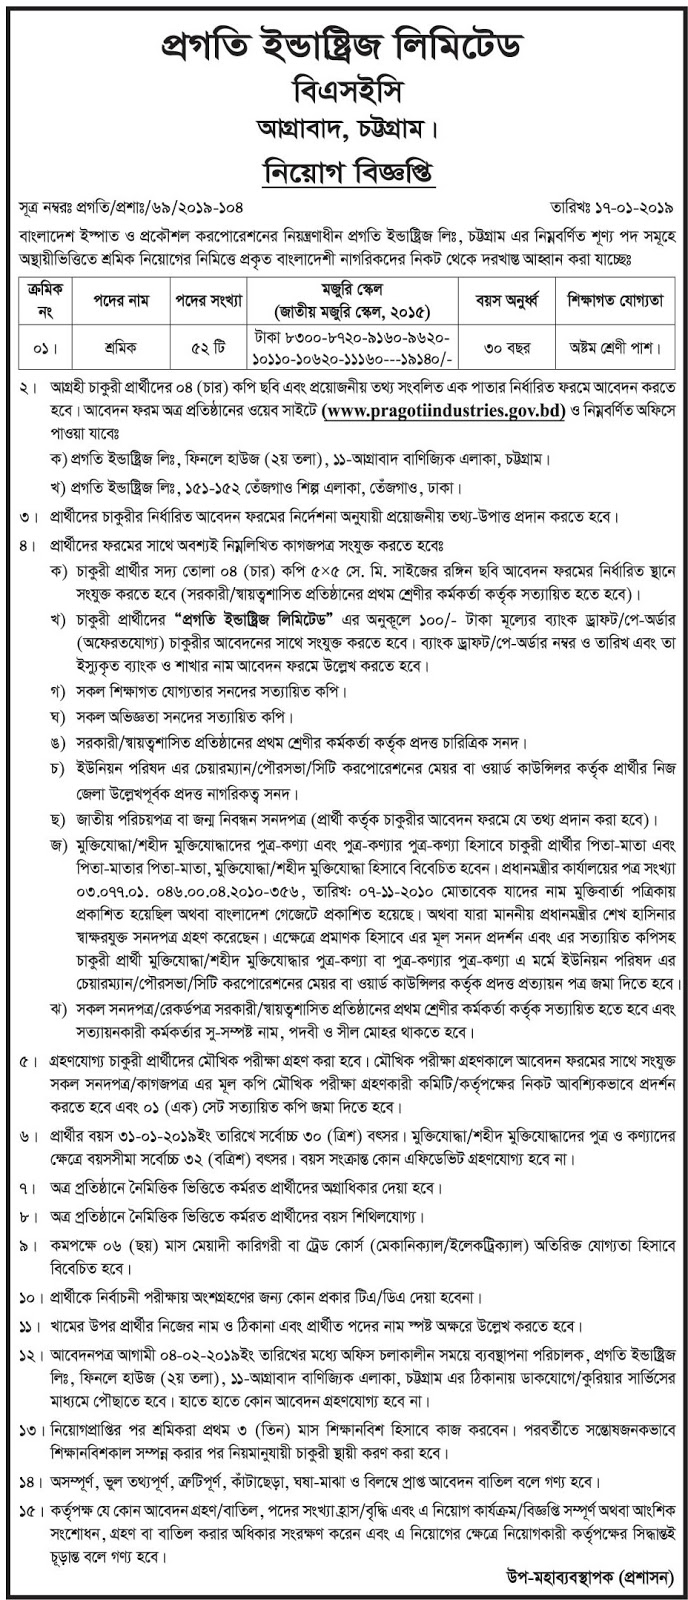 Pragati Industries Ltd. Job Circular 2019